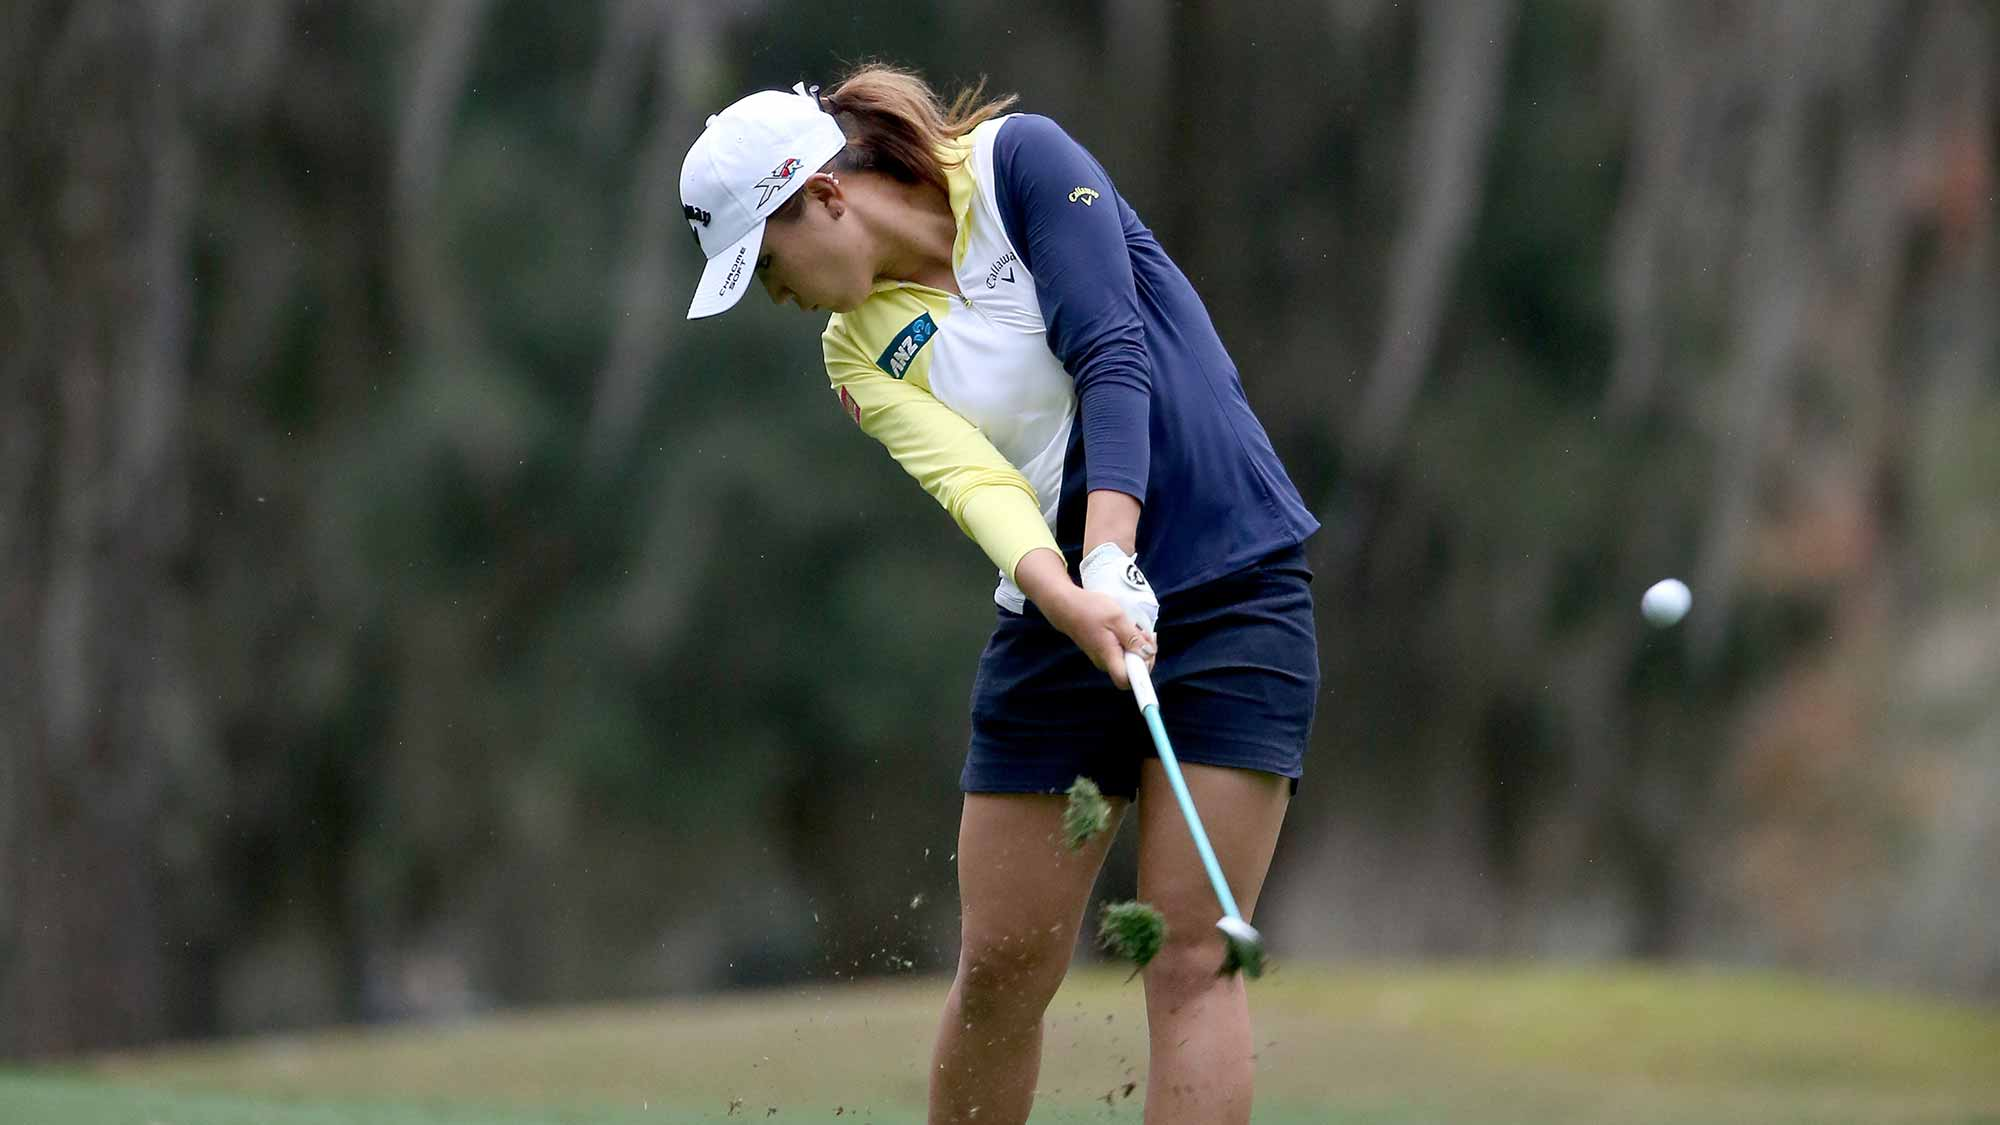 Lydia Ko of New Zealand plays a shot on the ninth hole during the second round of the Coates Golf Championship Presented By R+L Carriers at Golden Ocala Golf Club